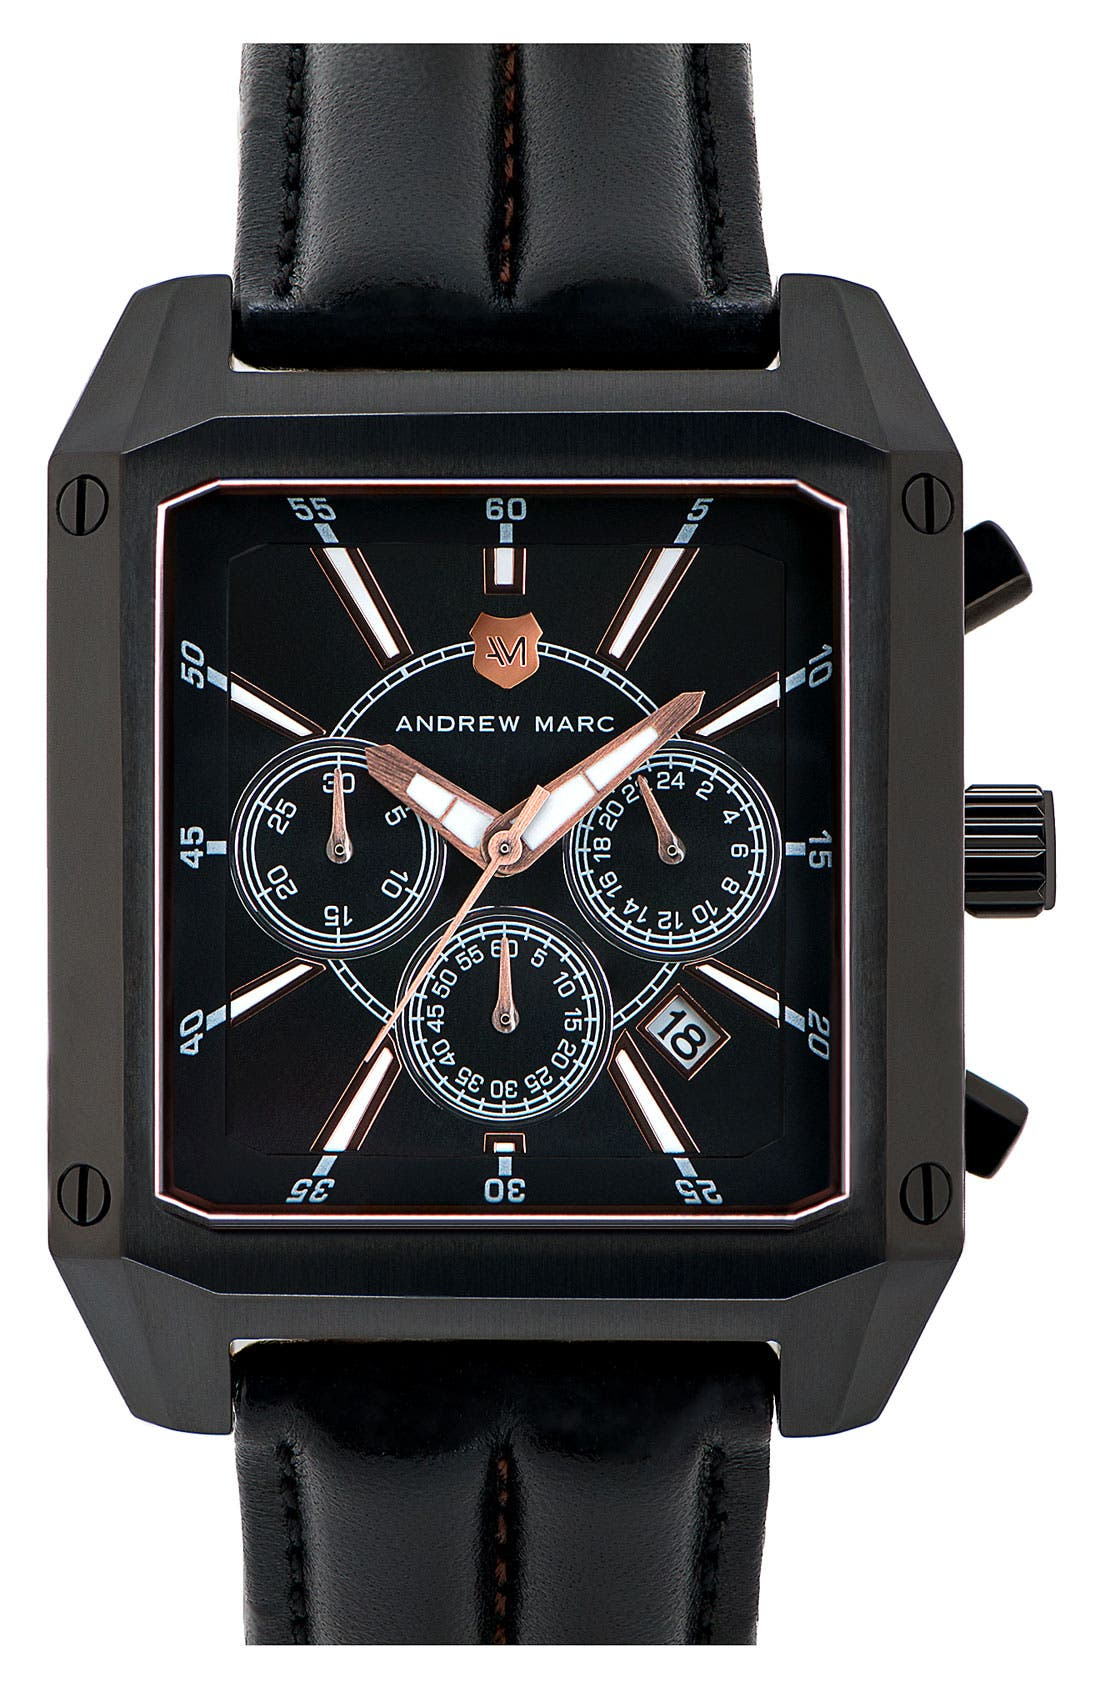 Watches 'Club Patrol' Chronograph Leather Strap Watch,                             Main thumbnail 1, color,                             001